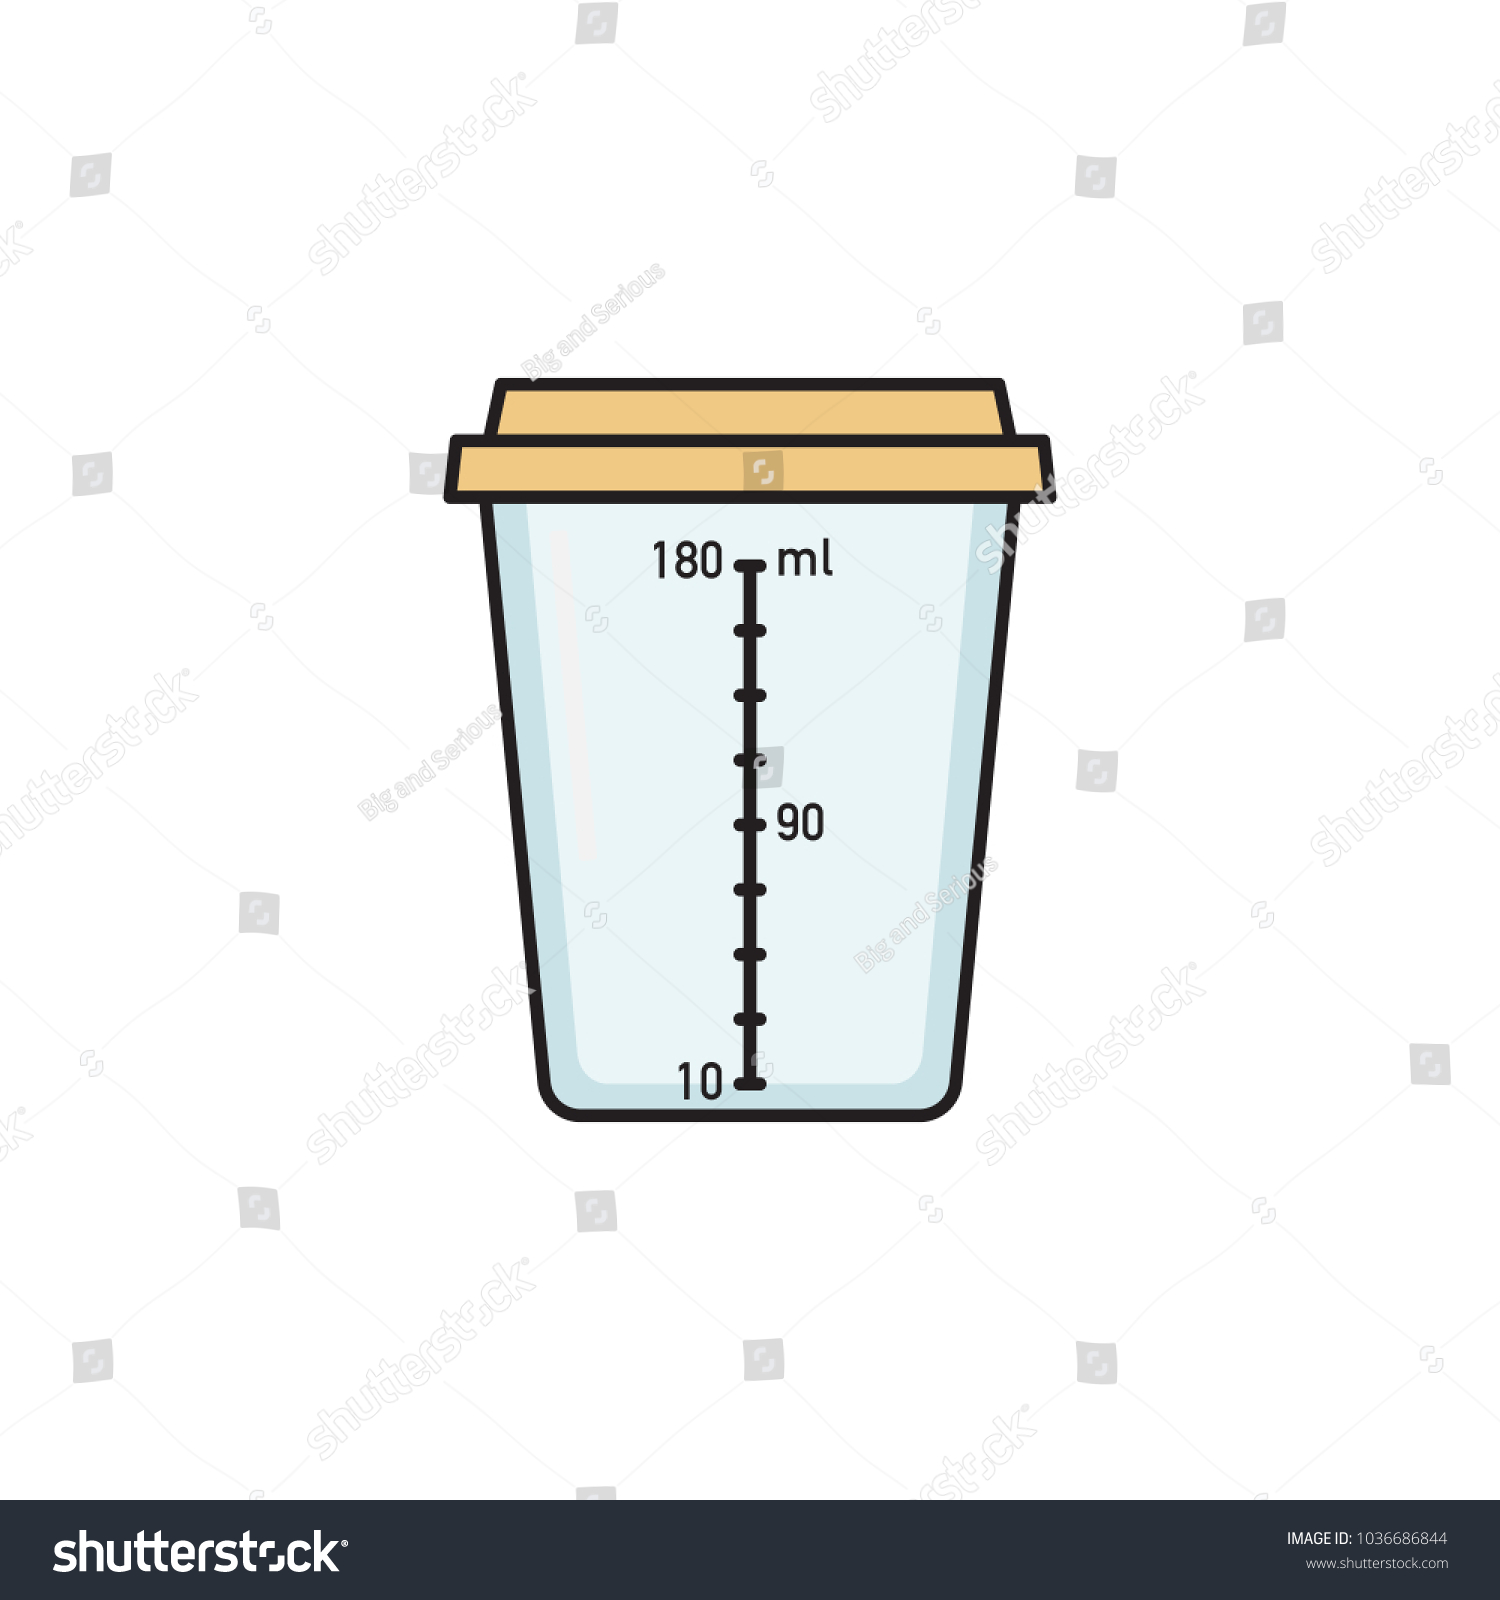 hight resolution of empty sterile plastic container for urine specimen sample collection medical exam urinalysis flat vector illustration isolated on white background